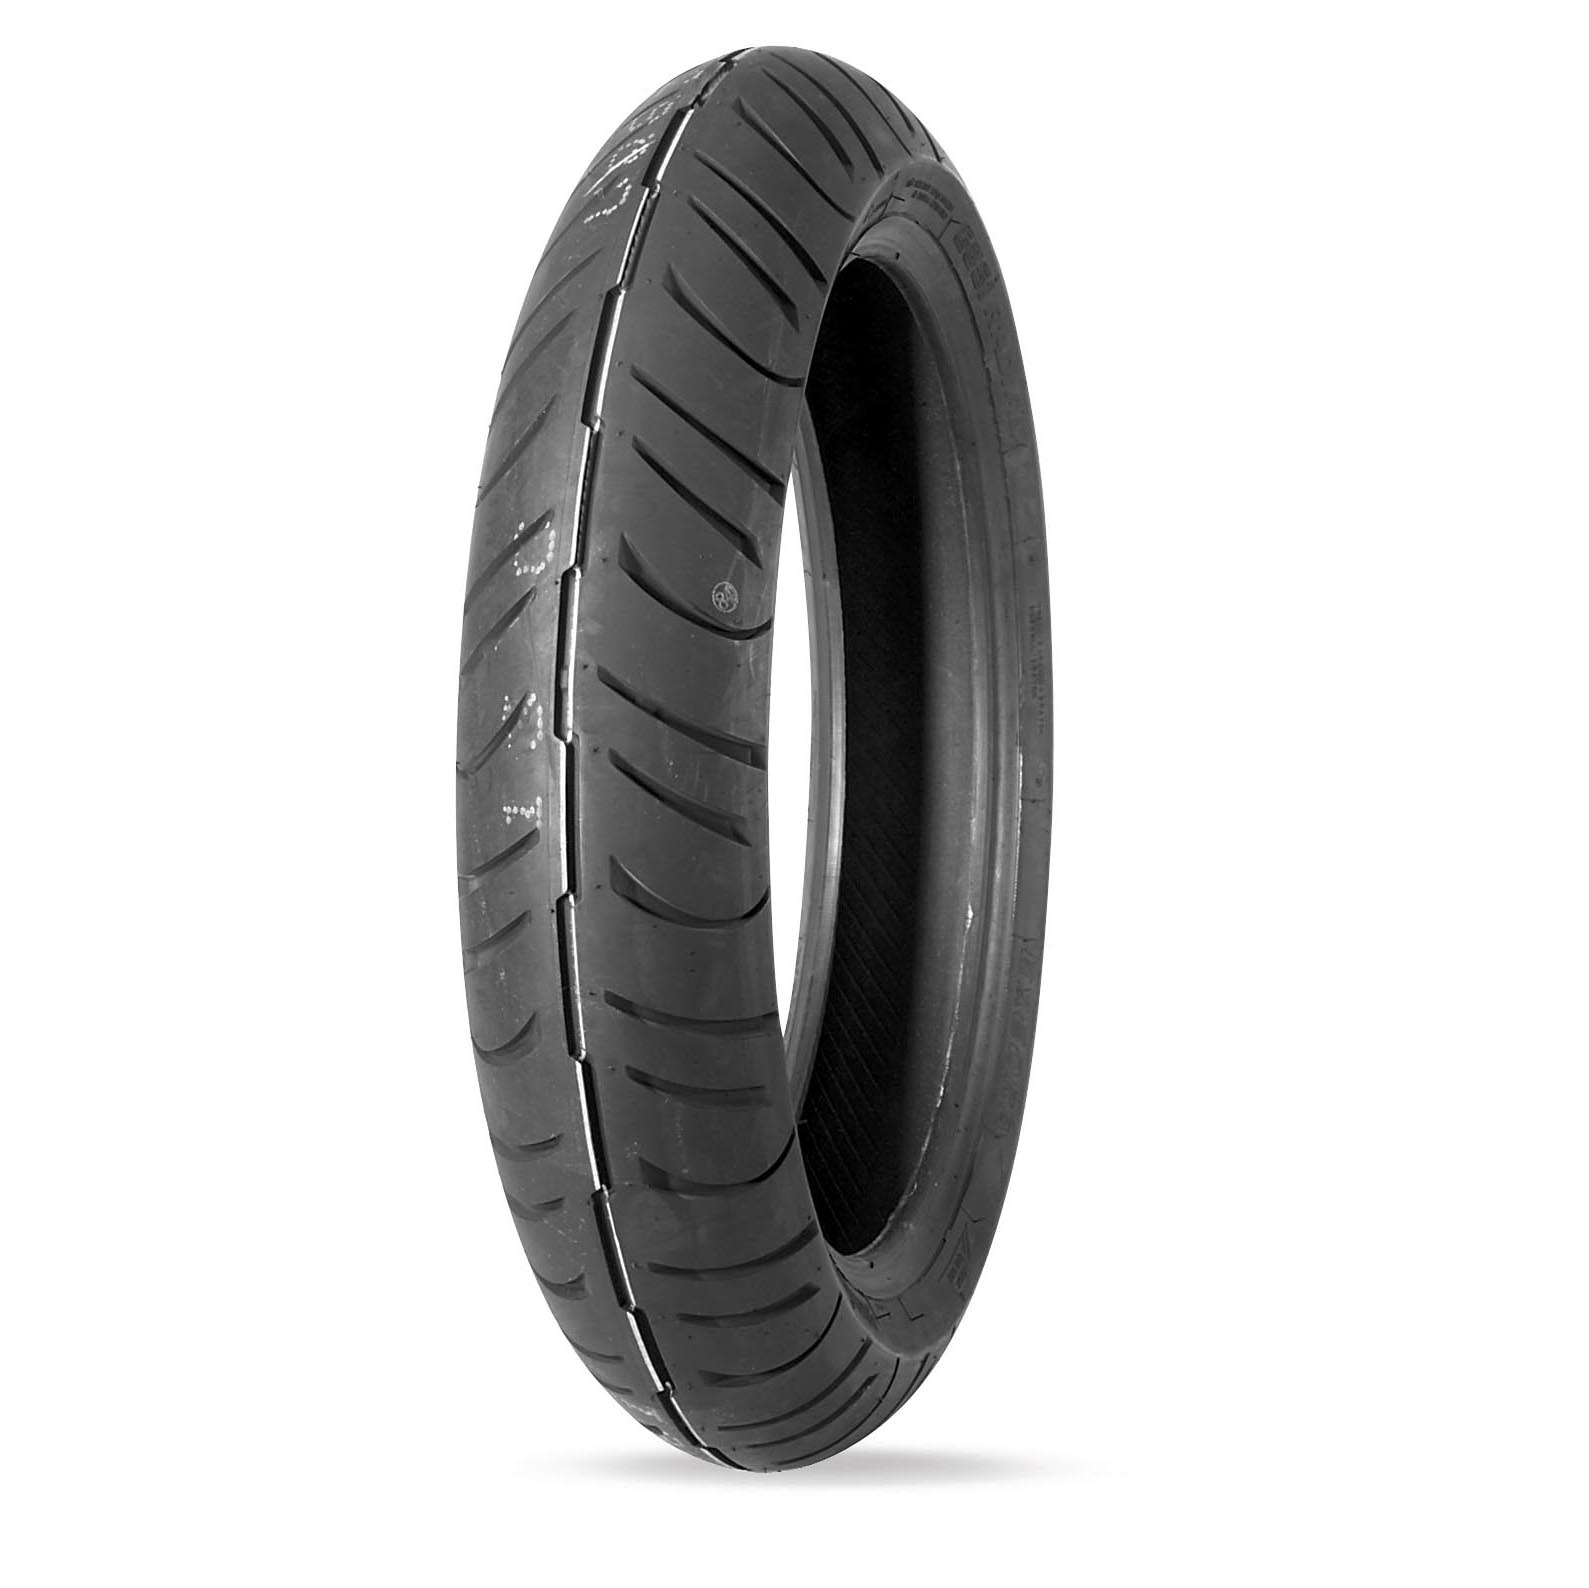 Get it delivered to your door - BRIDGESTONE G851 EXEDRA CRUISER FRONT TIRE - 3400 (EGP)